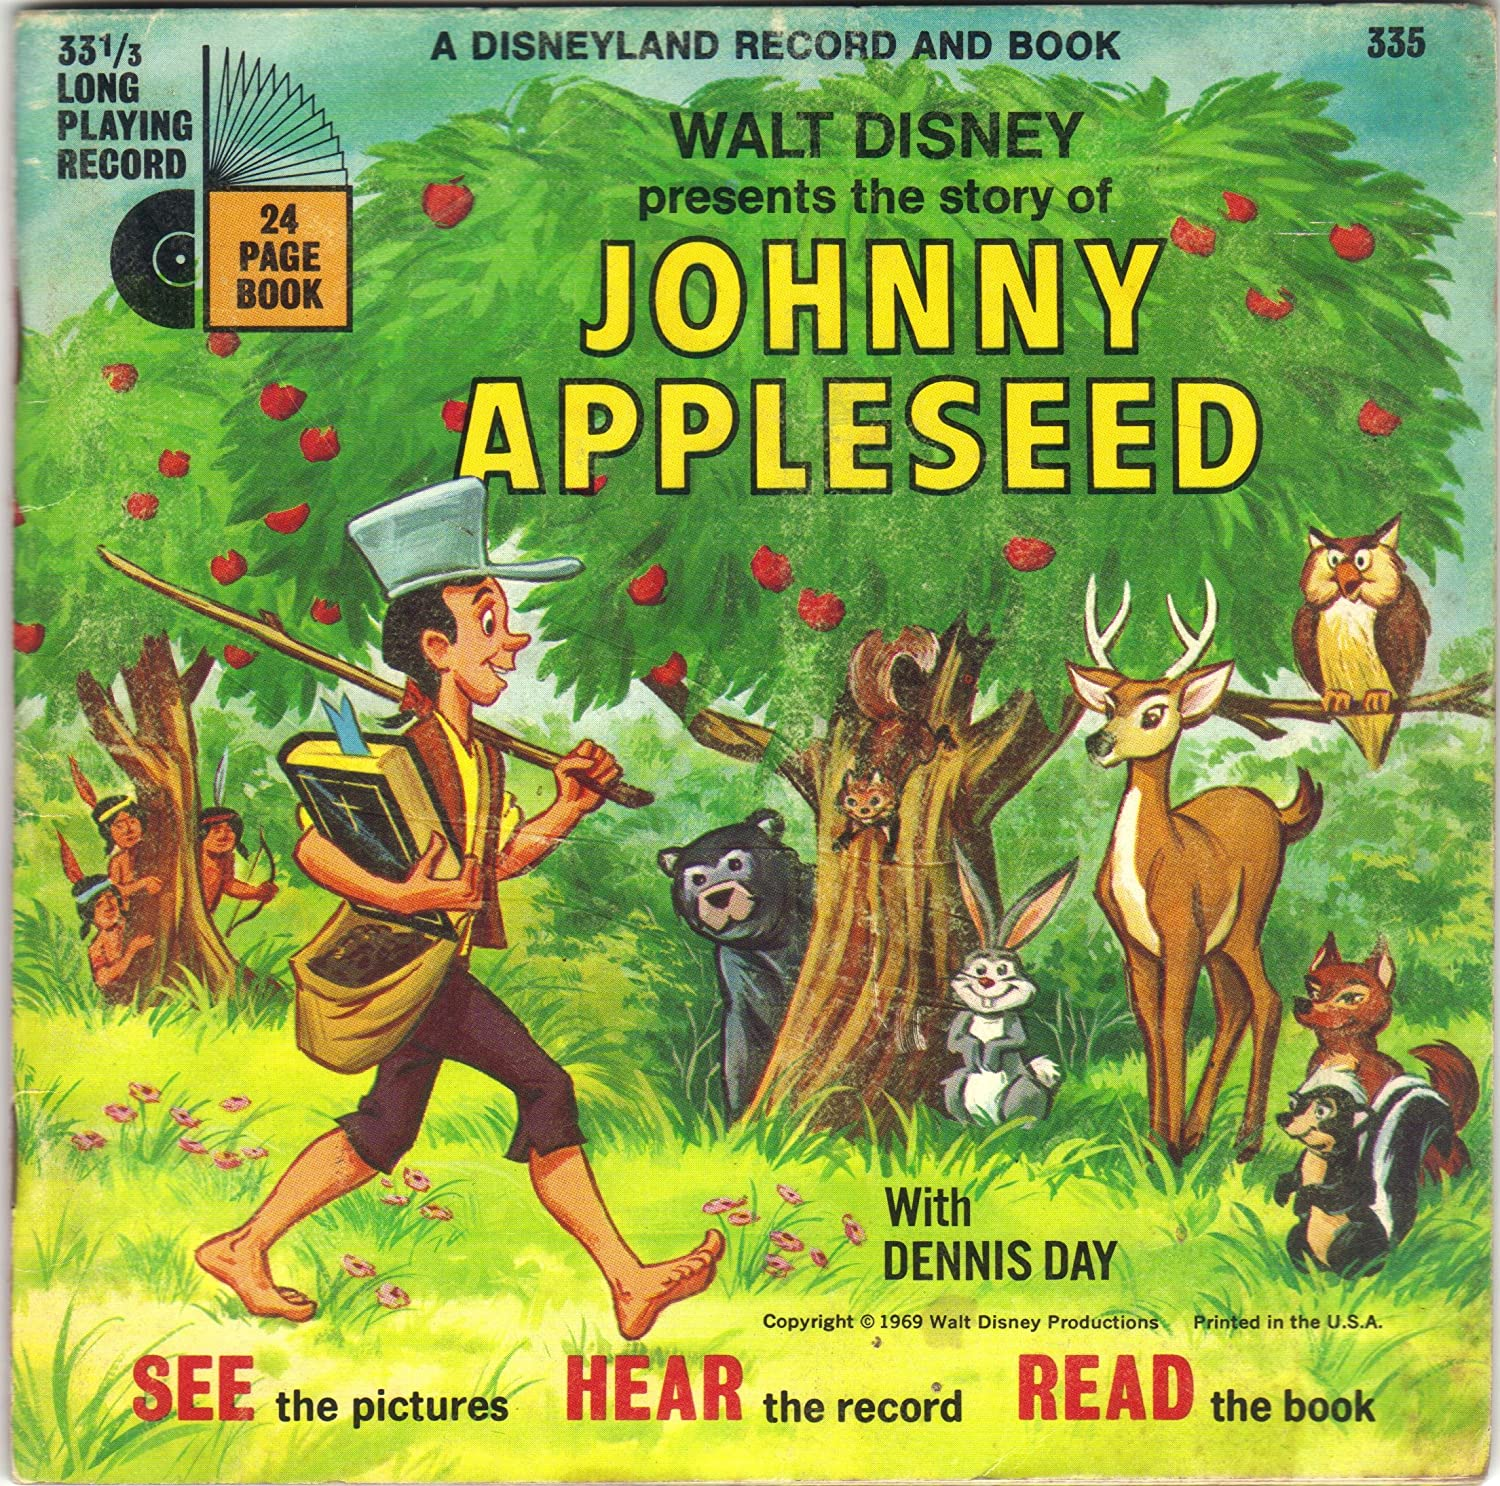 Dennis Day Walt Disney Story Of Johnny Appleseed Book Record Amazon Com Music